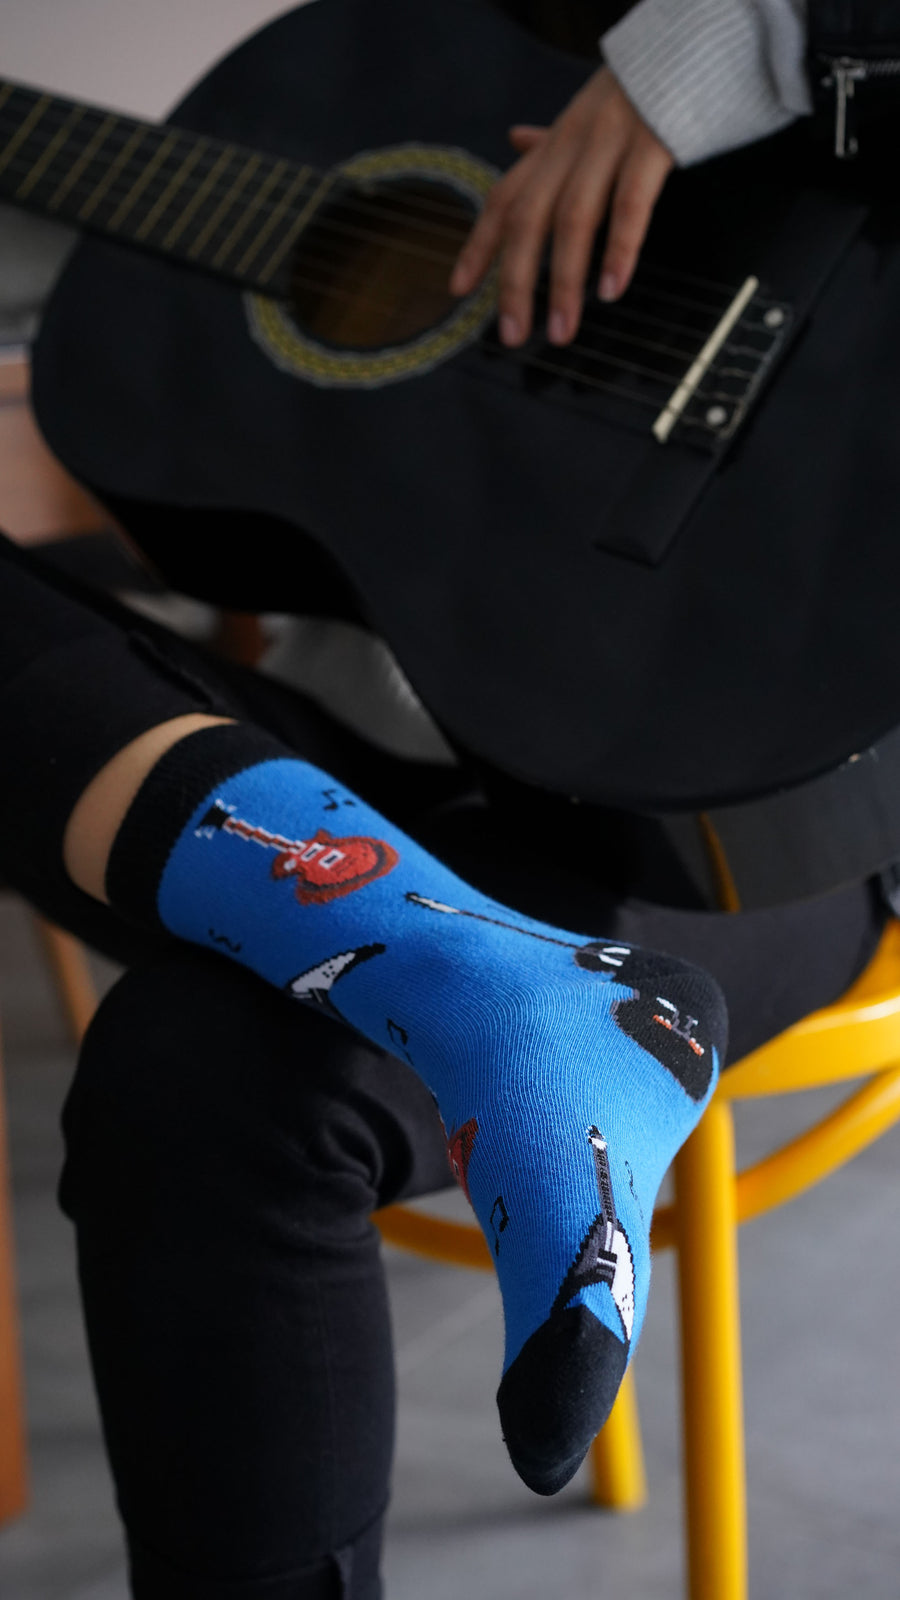 Women's Guitars Socks